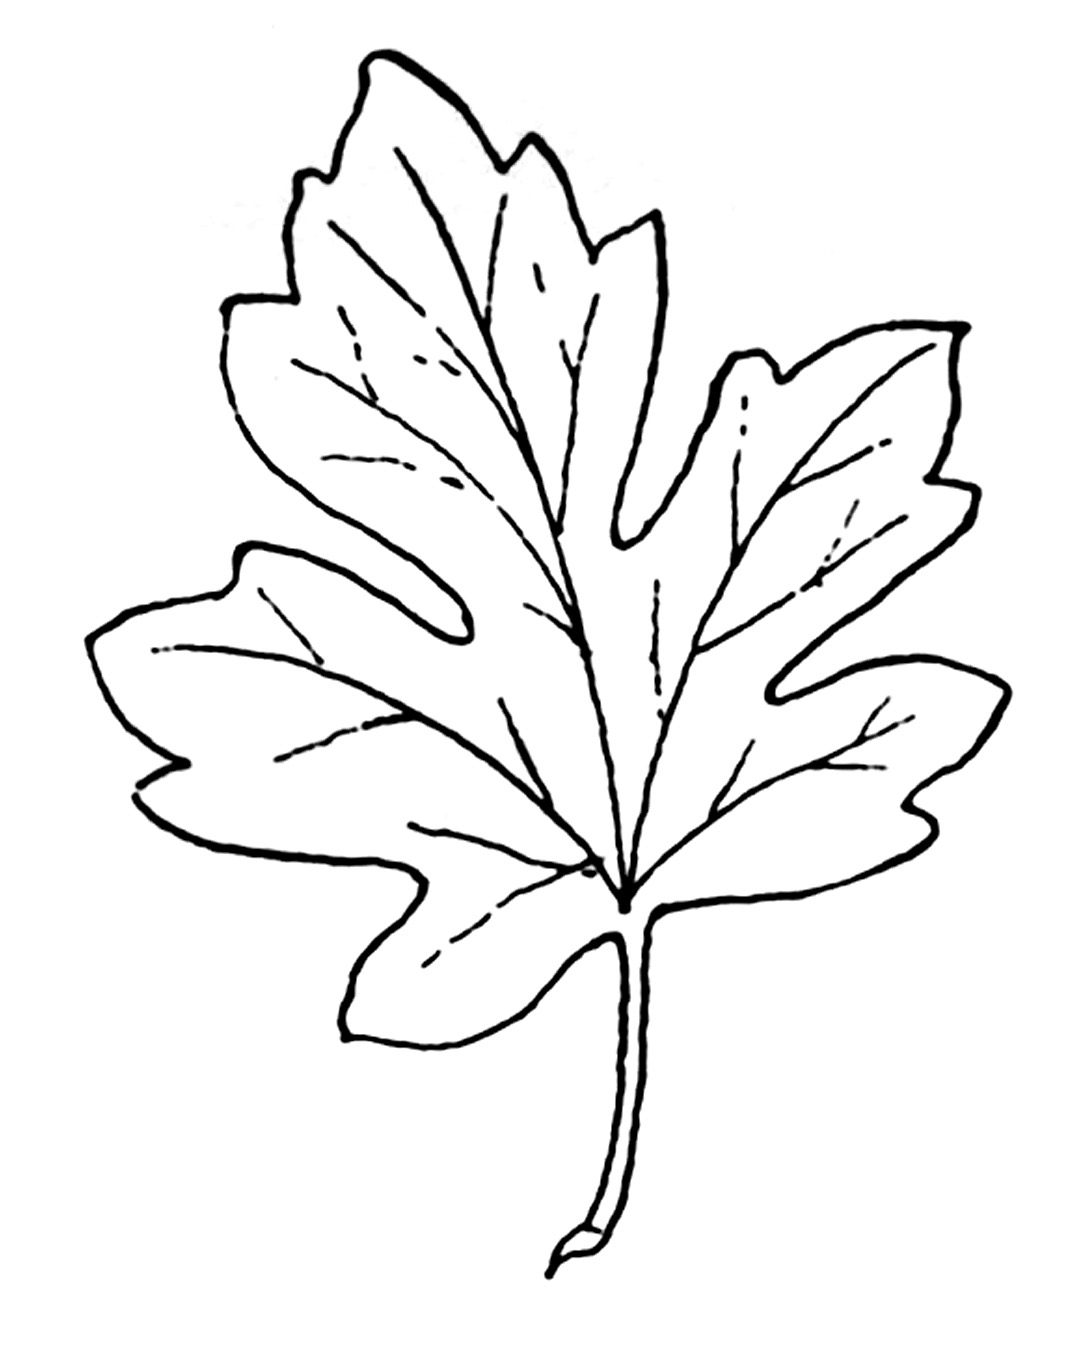 hight resolution of black and white leaf clipart